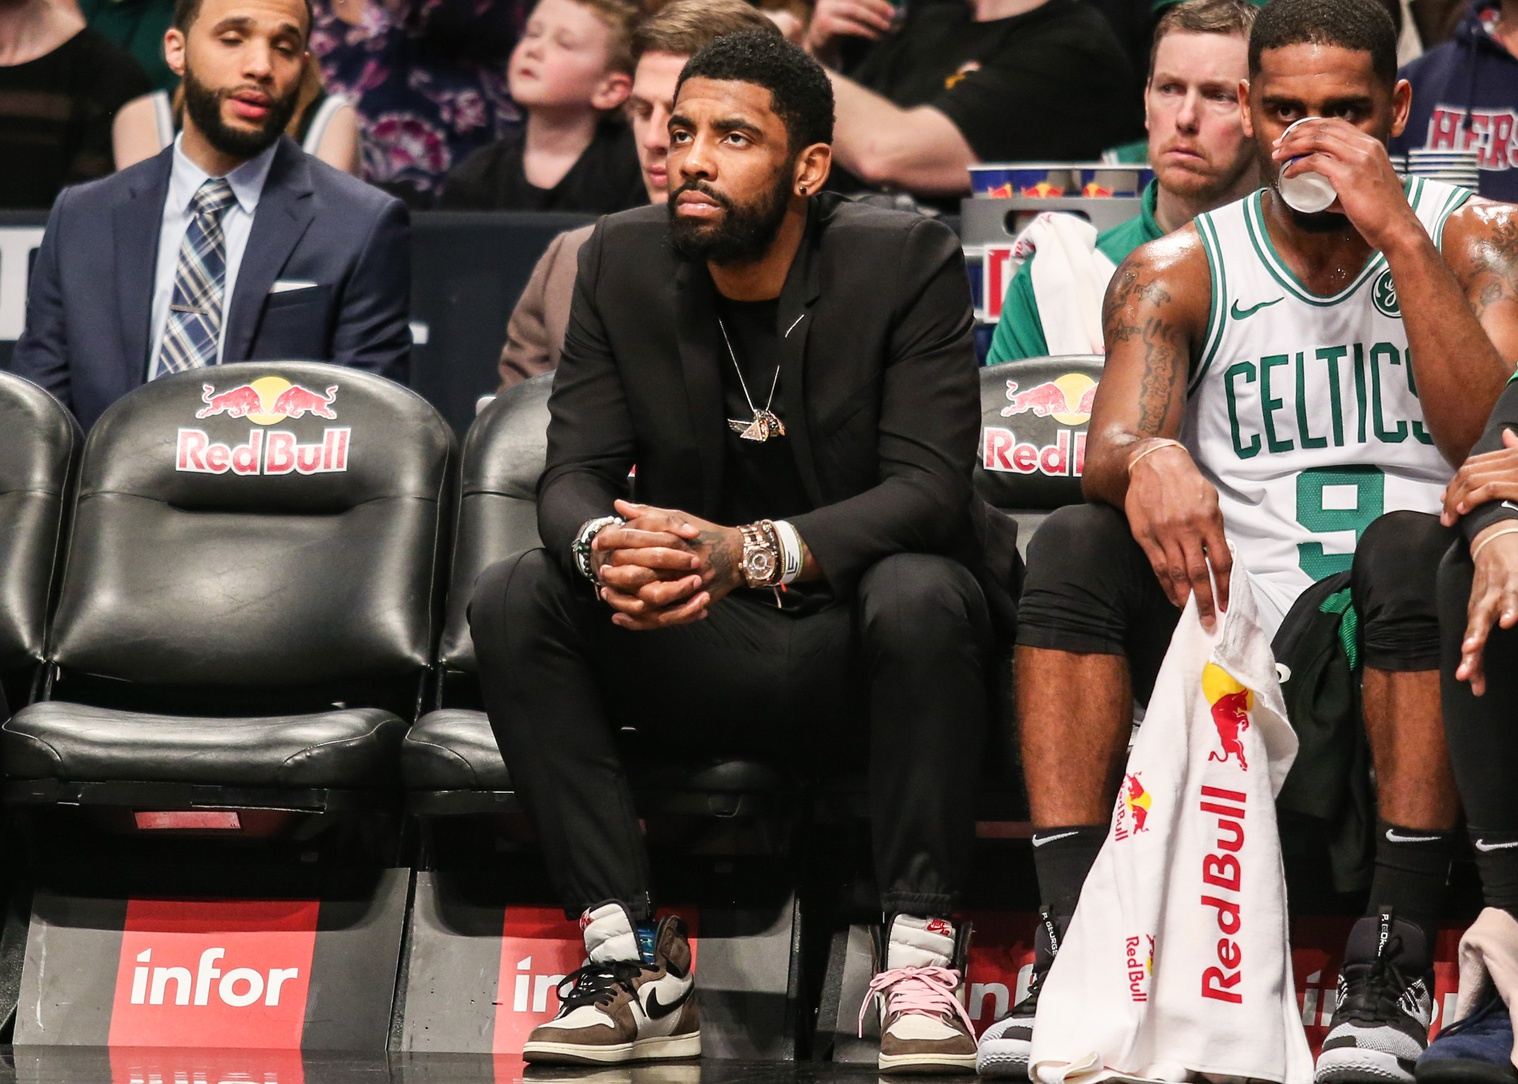 Bulpett: Two sources says Kyrie Irving will sign with Brooklyn Nets